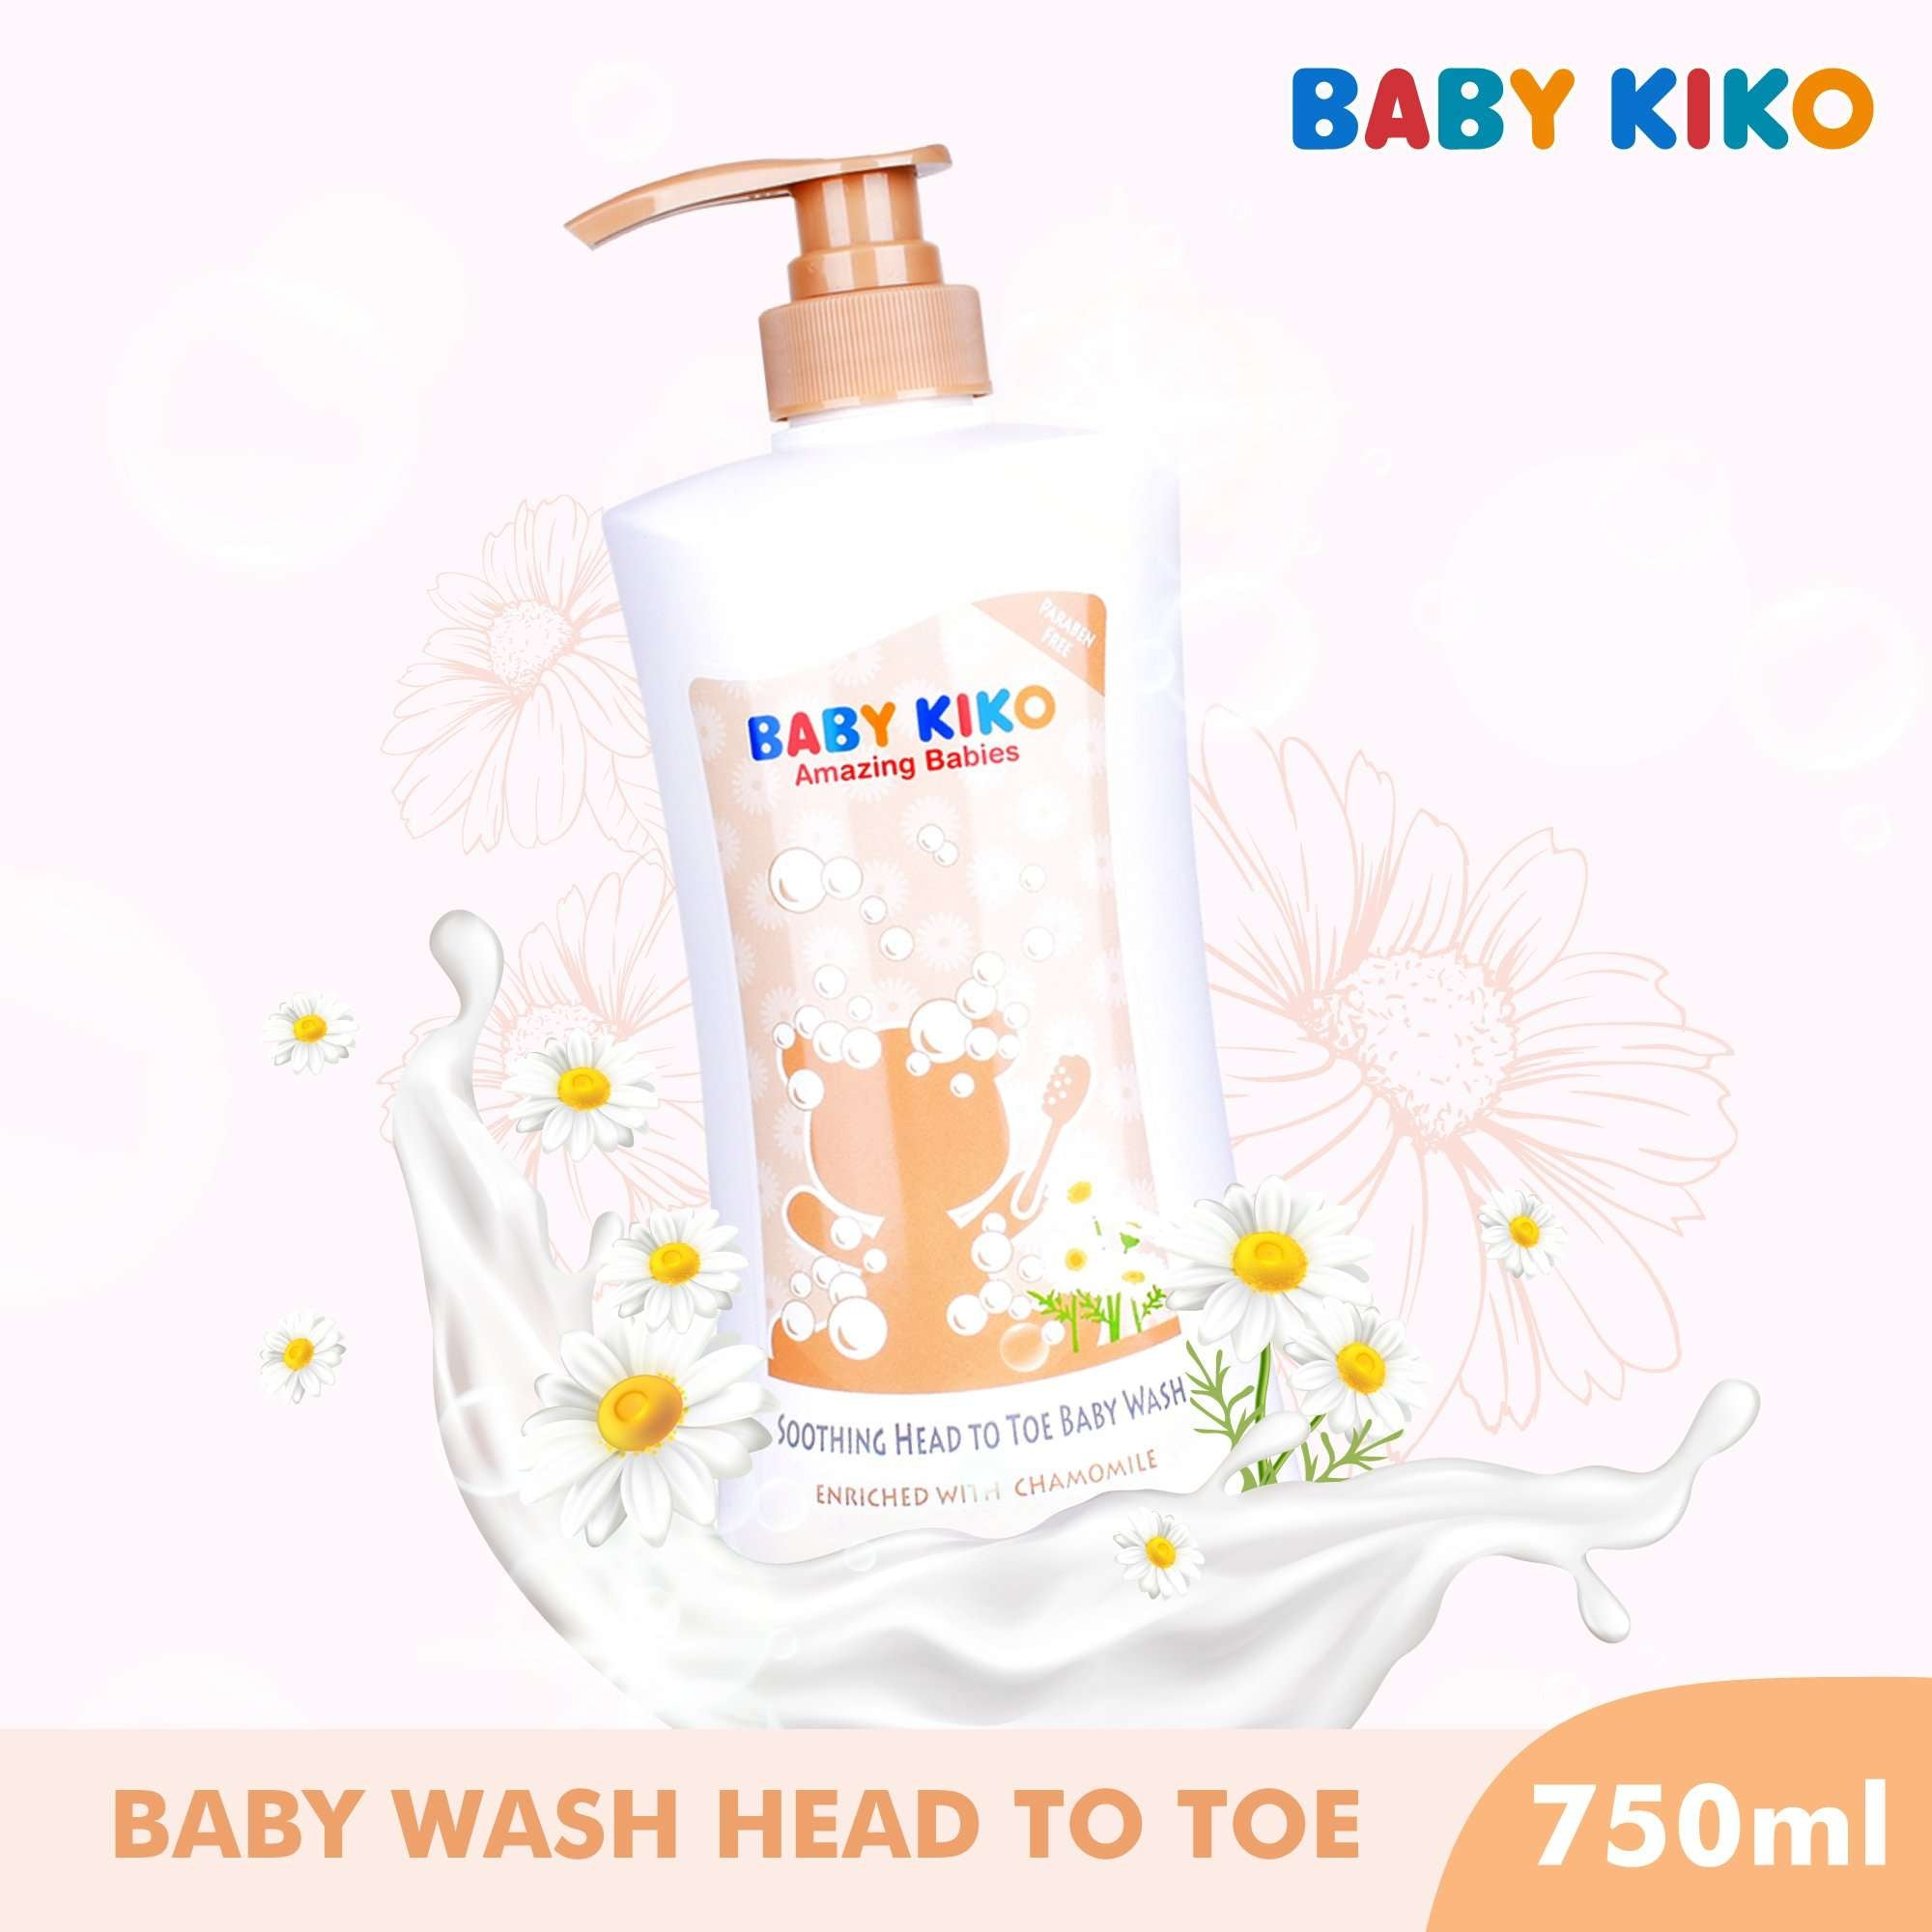 Baby KIKO Smothing Head To Toe Body Wash Enriched With Chamomile - 750ml 3652-002 : Buy Baby KIKO online at CMG.MY